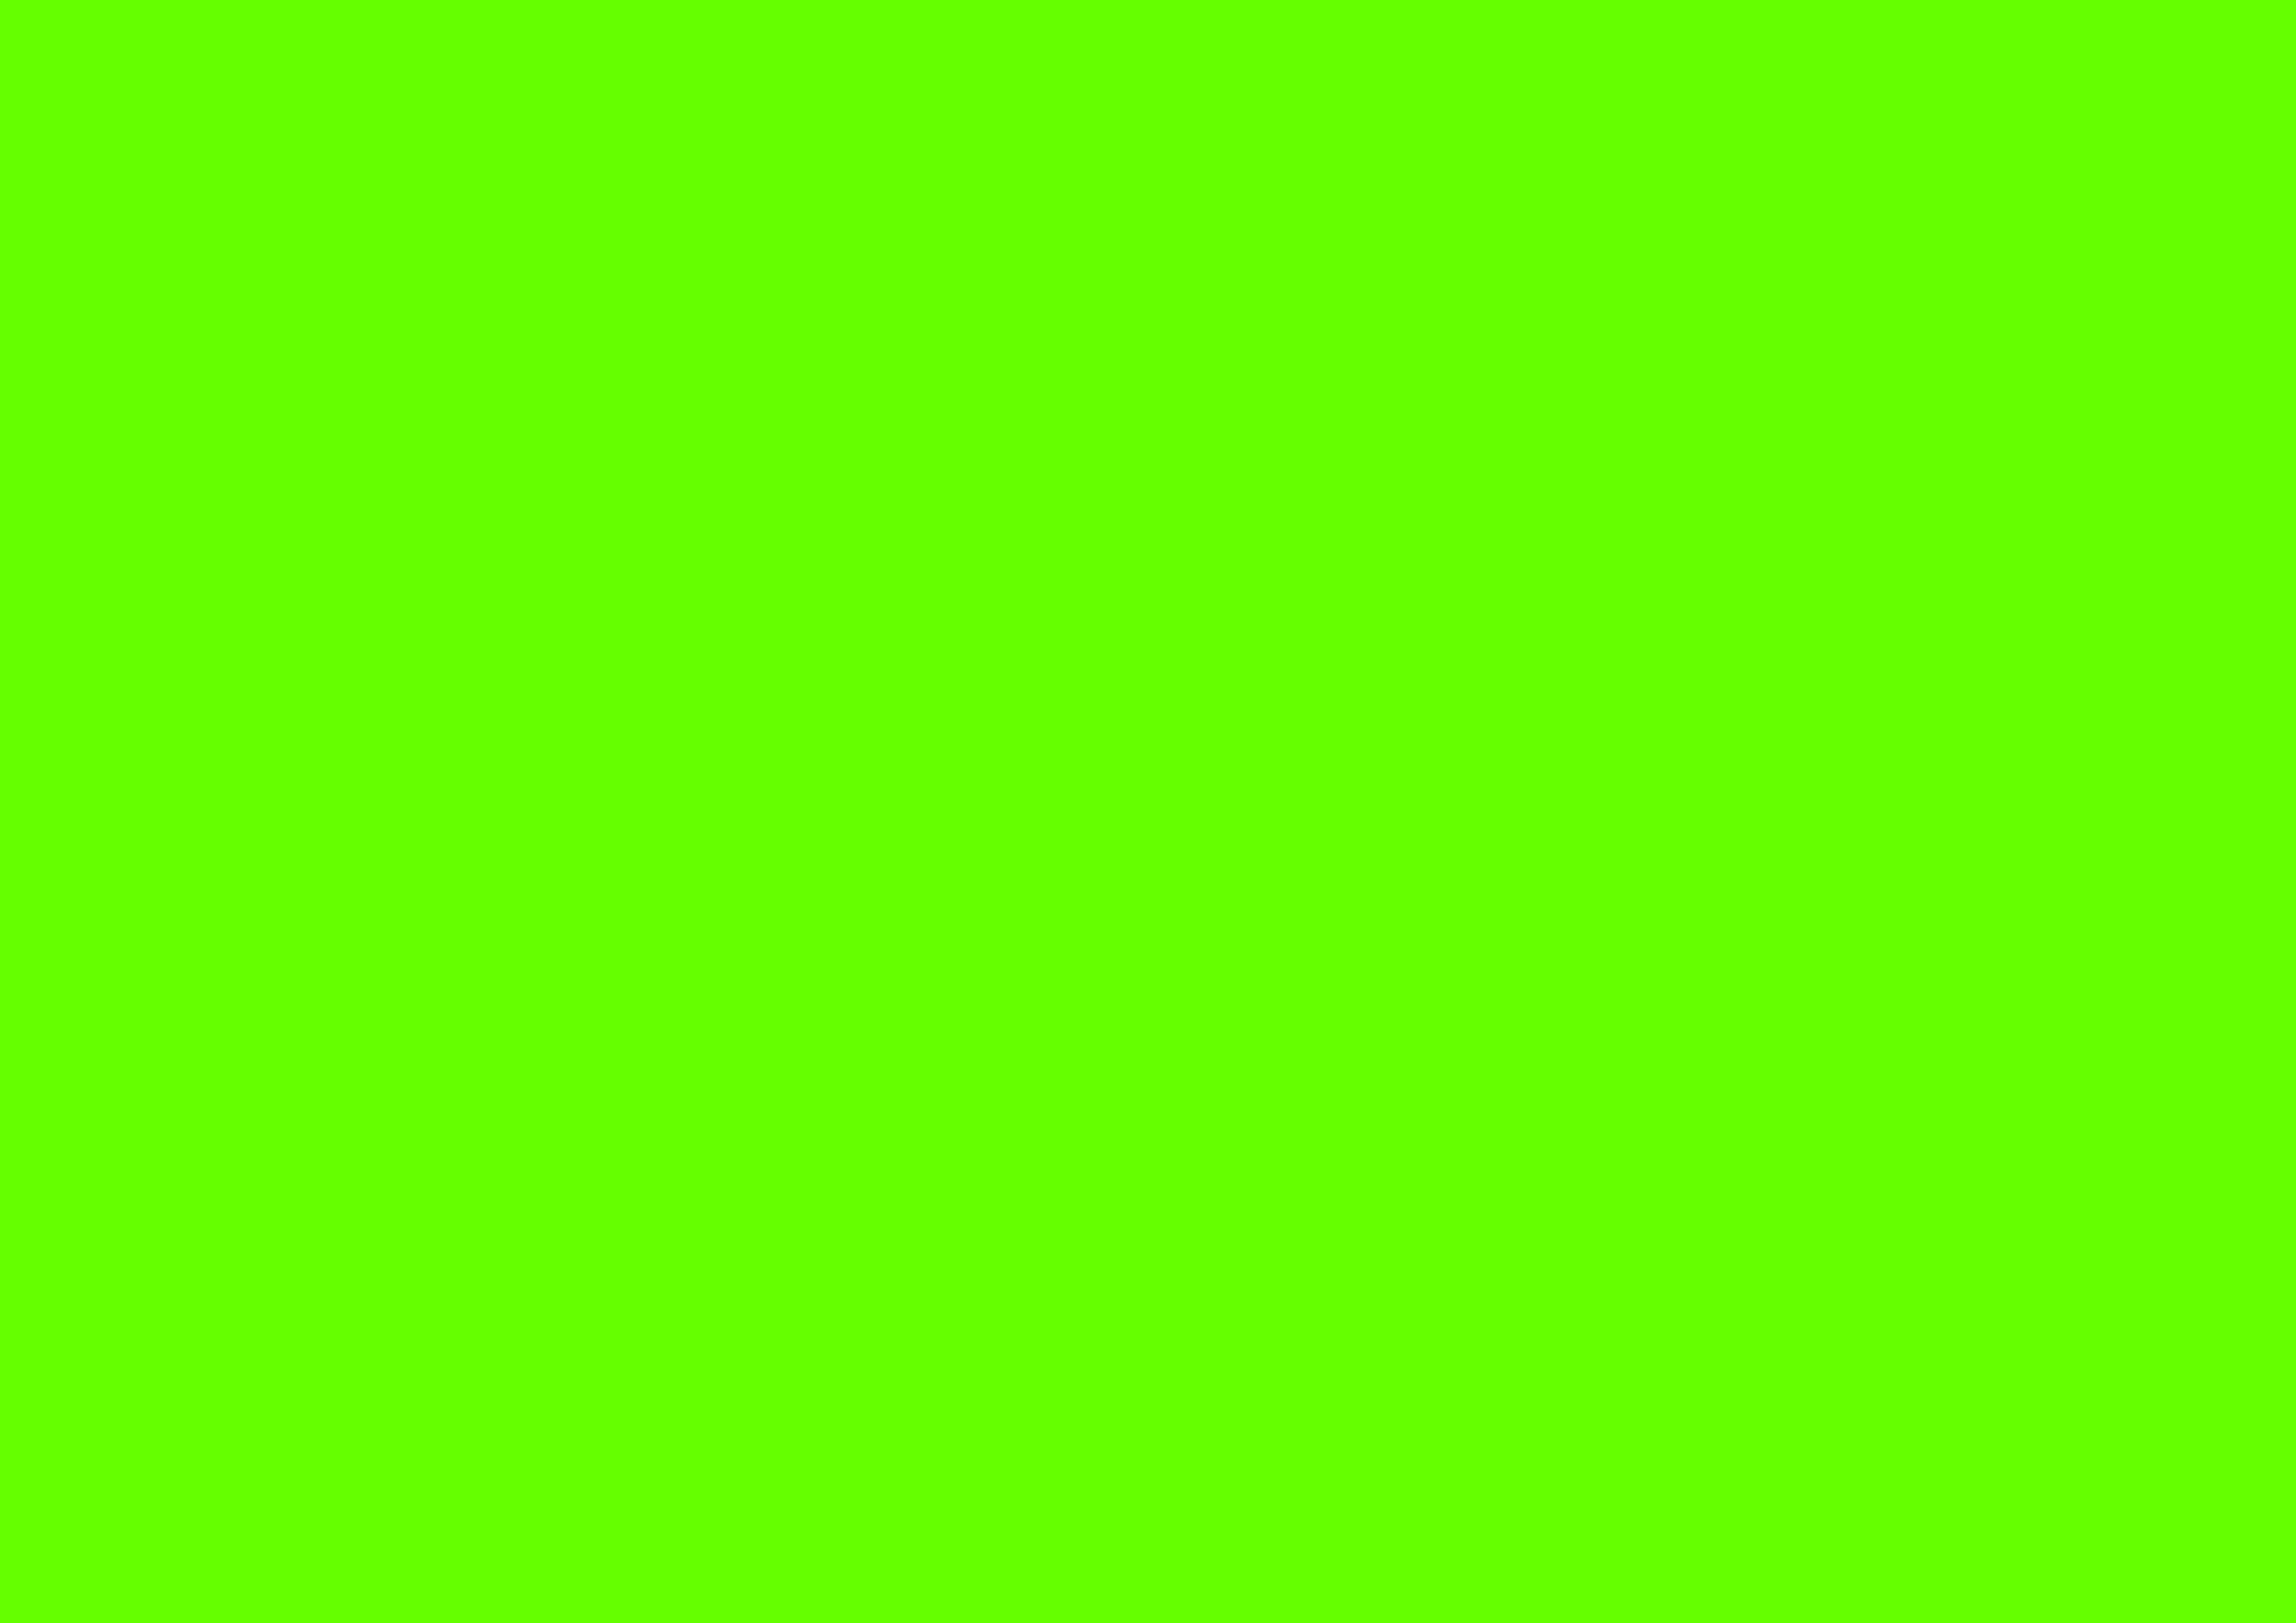 3508x2480 Bright Green Solid Color Background